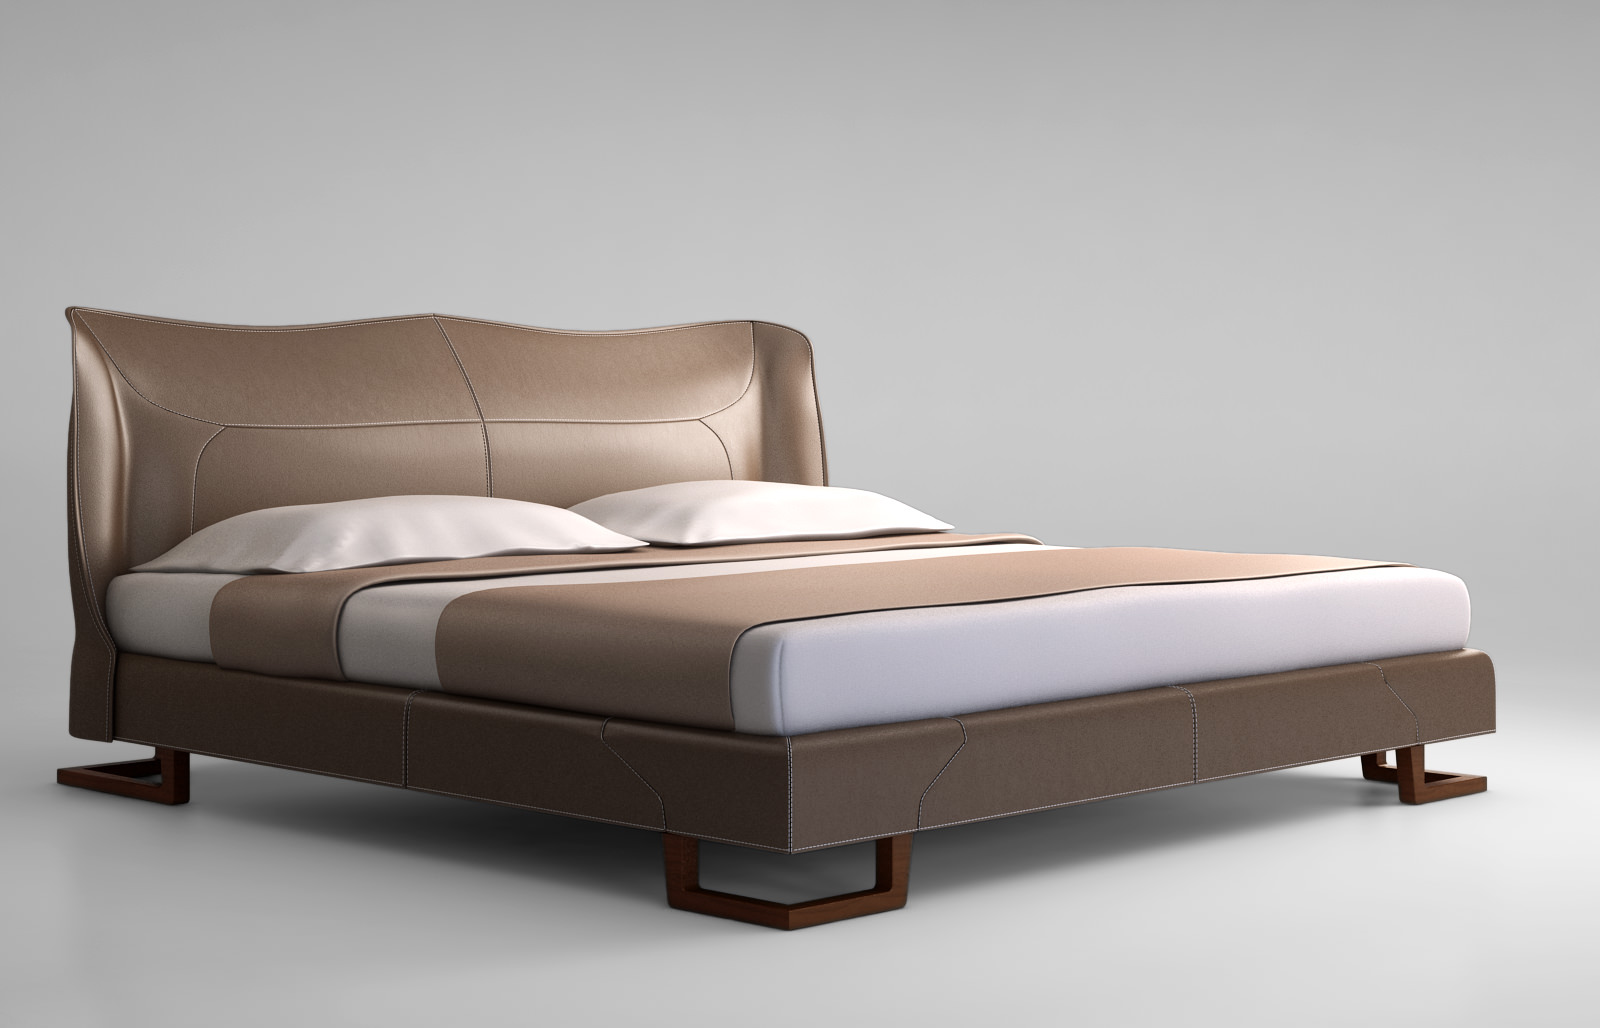 ... corium bed 3d model very high quality model ideal for close ups the